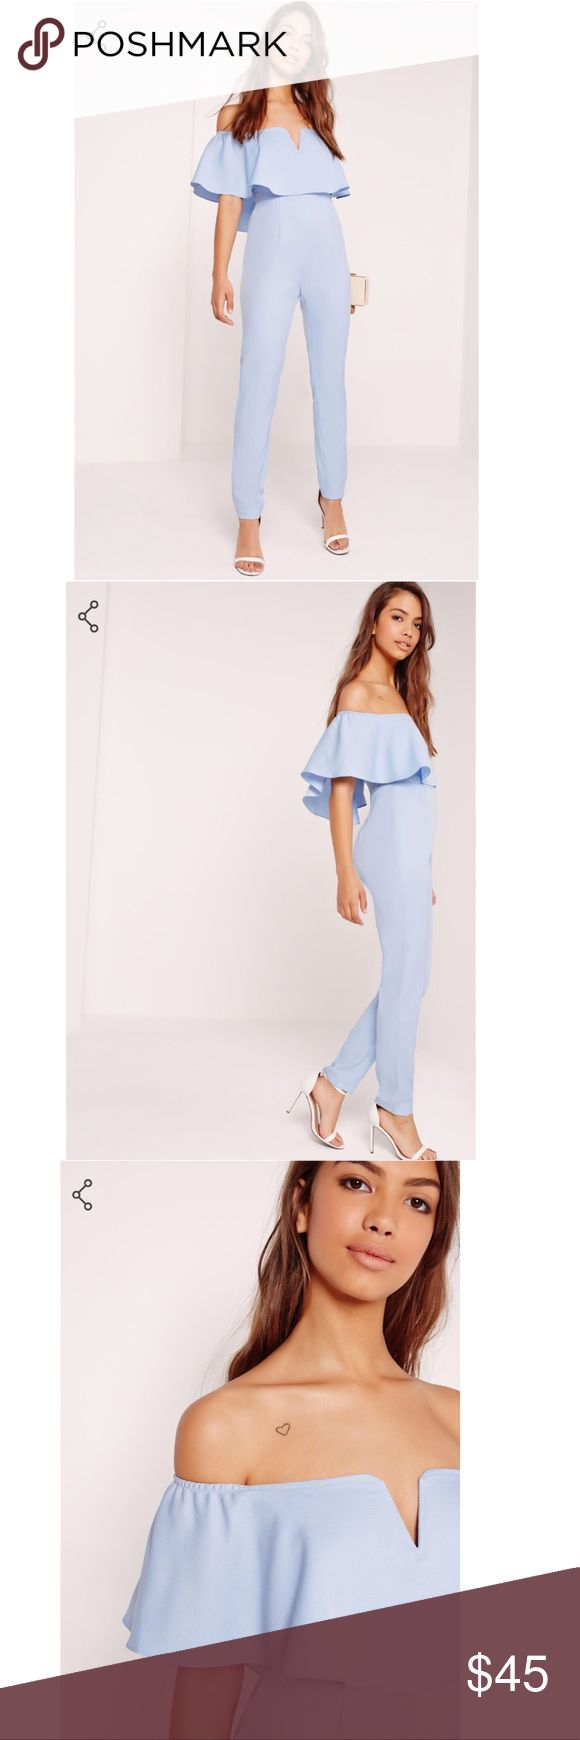 Blue Frill Detail Jumpsuit Tuen up the air conditioner girl, because this jumpsuit is on fire! this bardot beaut will be your new go to piece for the weekend, or whenever. in a baby blue hue with a bardot neckline and frill detail, wear with stacked stilettos and a clutch bag for a killer look. 100% Polyester. Size 10. Missguided Pants Jumpsuits & Rompers